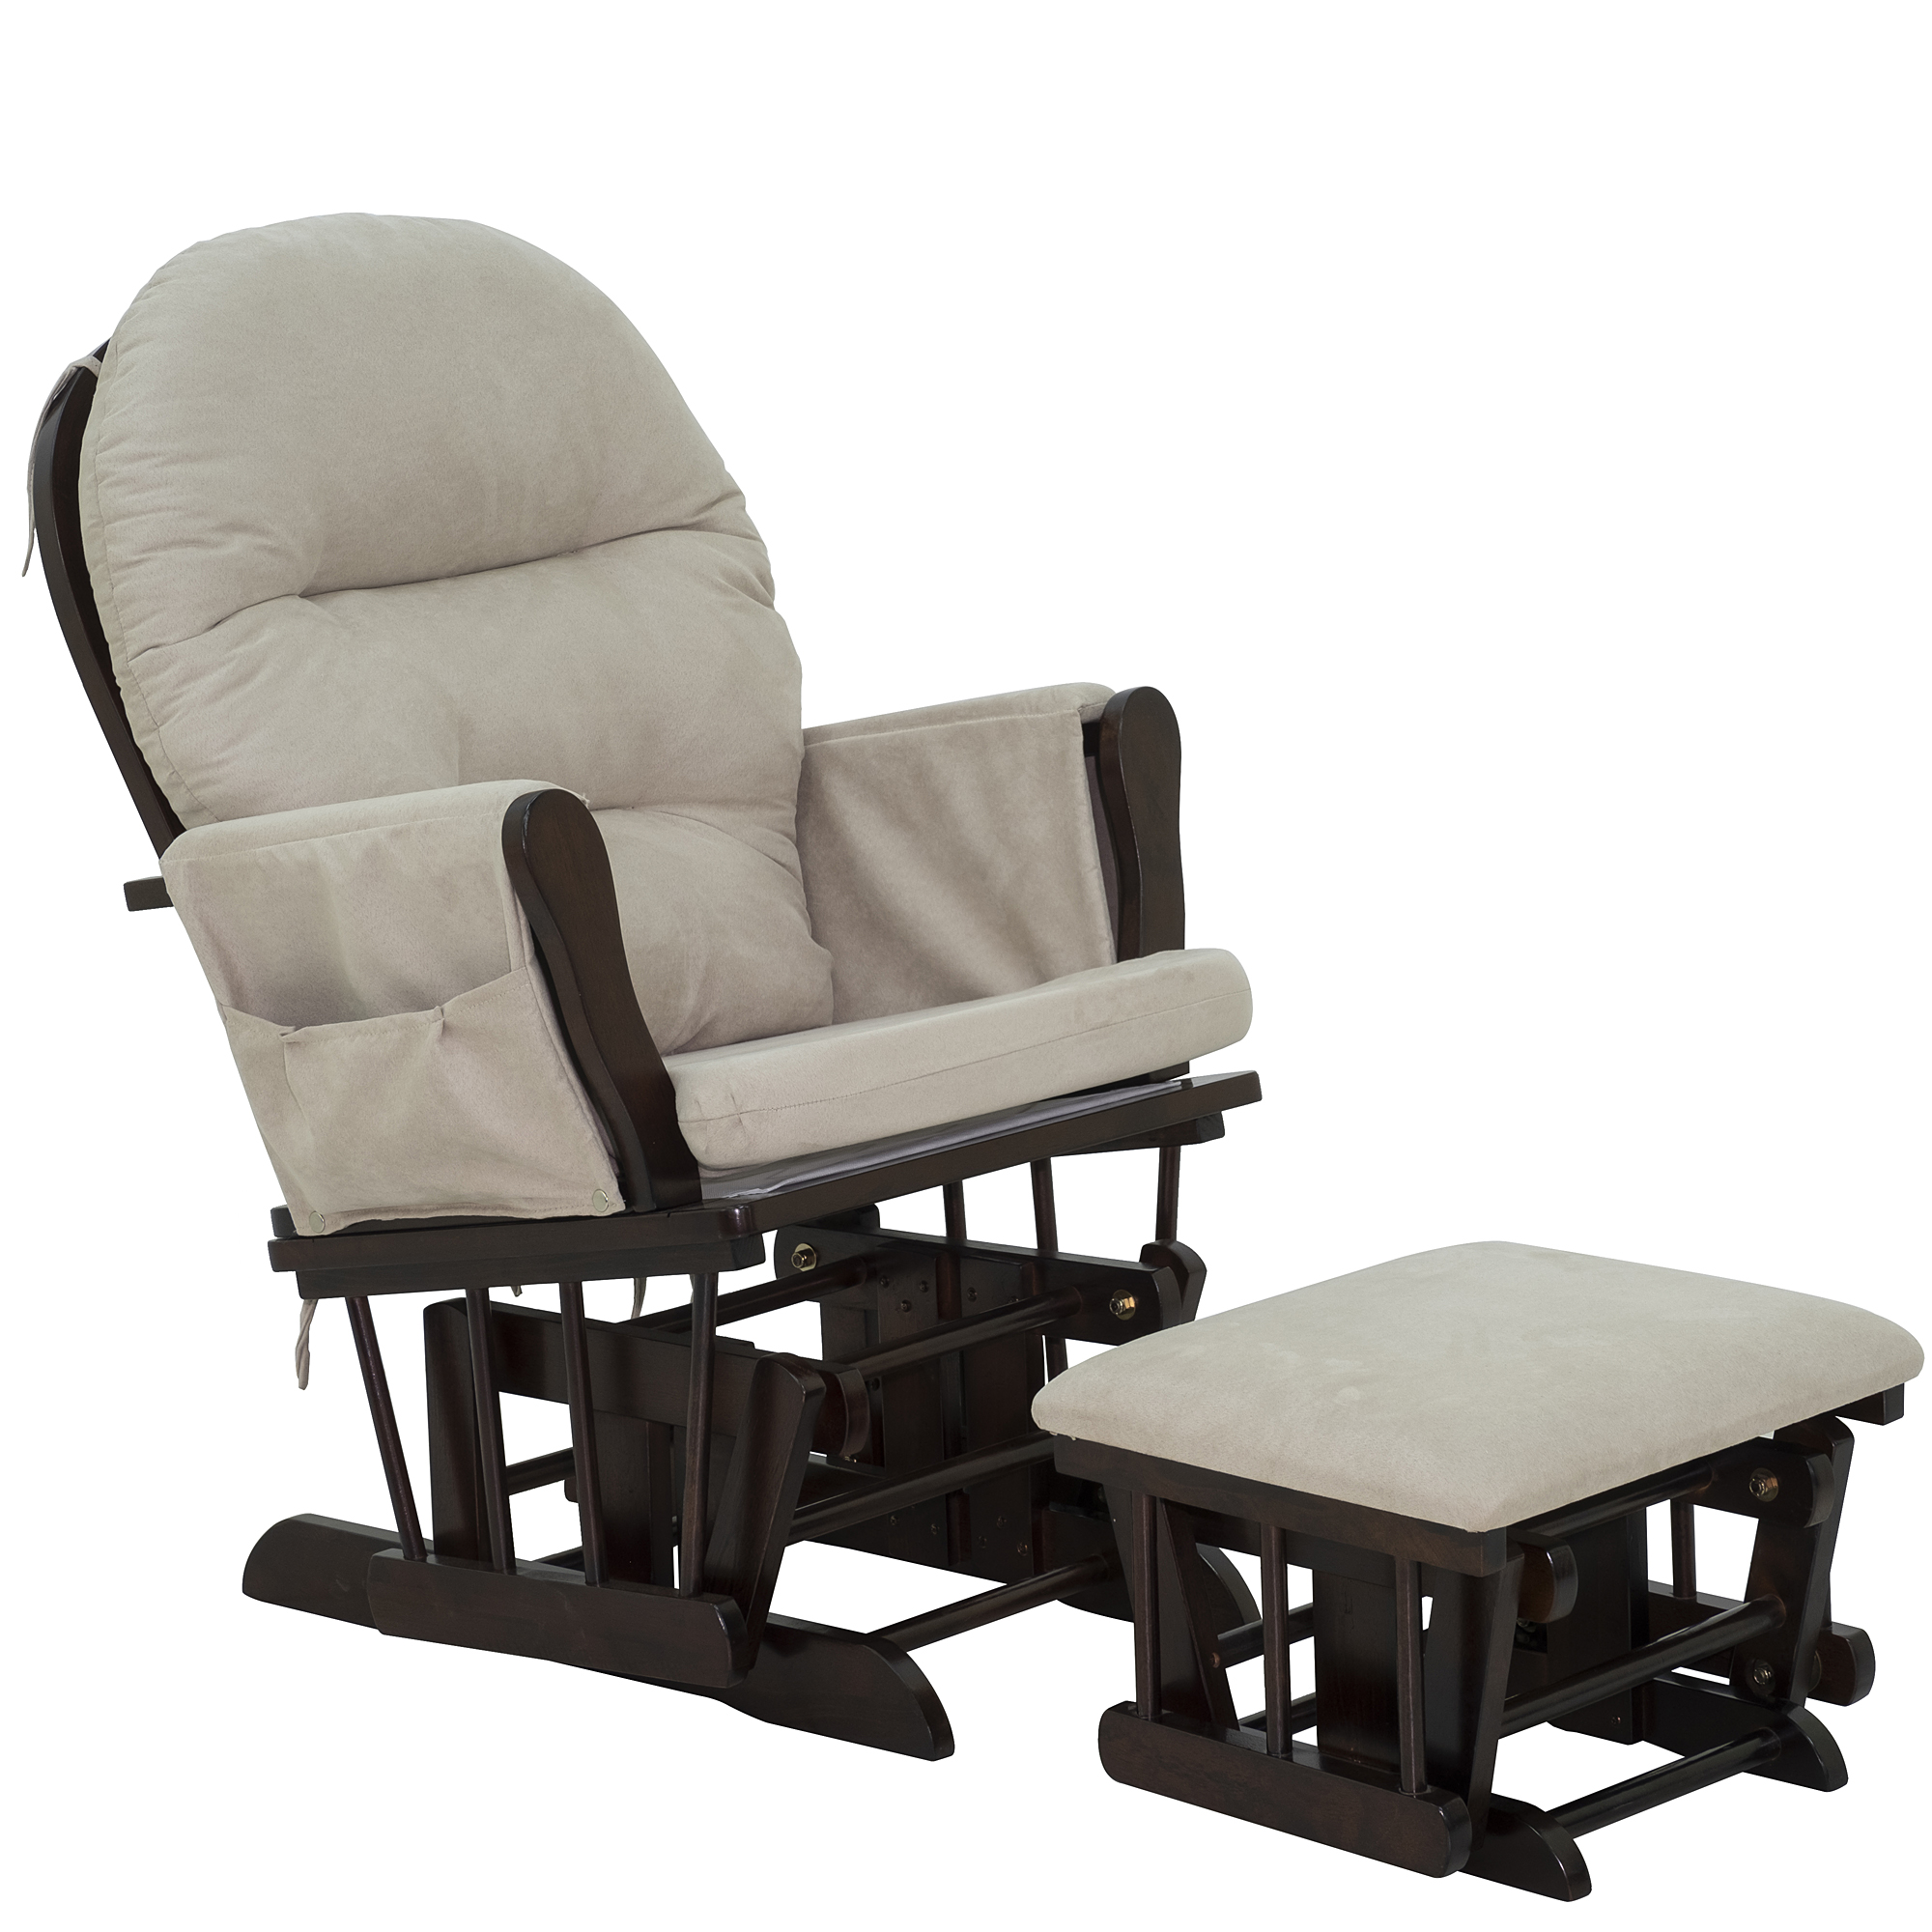 Picture of: Cad 269 99 Homcom Nursery Glider Ottoman Set Suede Living Rome Grey Wood Nursing With Cushion Rocking Chair Footrest Recline Rocker Furniture Cushioned Canada 95509802439